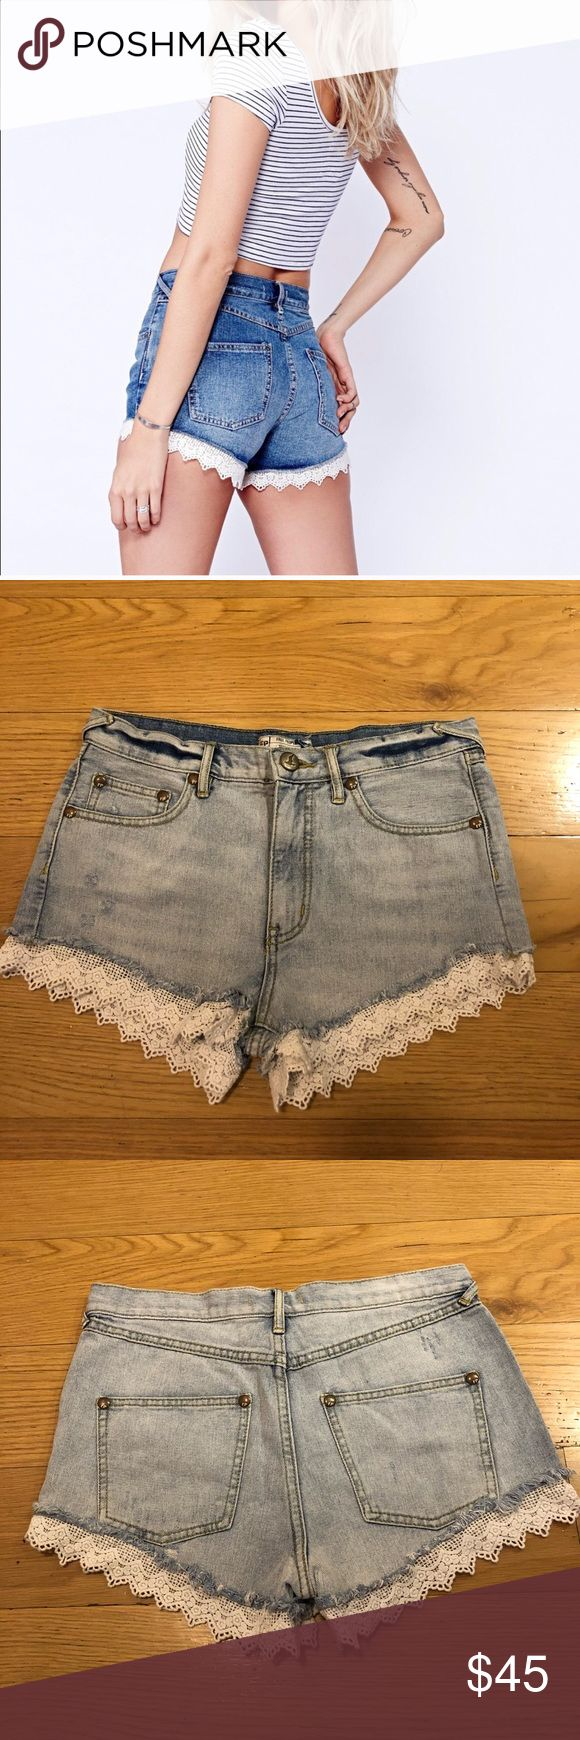 "FREE PEOPLE Lacey Cut-Off Shorts Free People Lacey Cut-Off Shorts. -Size 27. -Belt loops. -Scalloped Lace hem. -Rise:10"" -Inseam: 2.5"" -Excellent condition!   NO Trades. Please make all offers through offer button. Free People Shorts Jean Shorts"